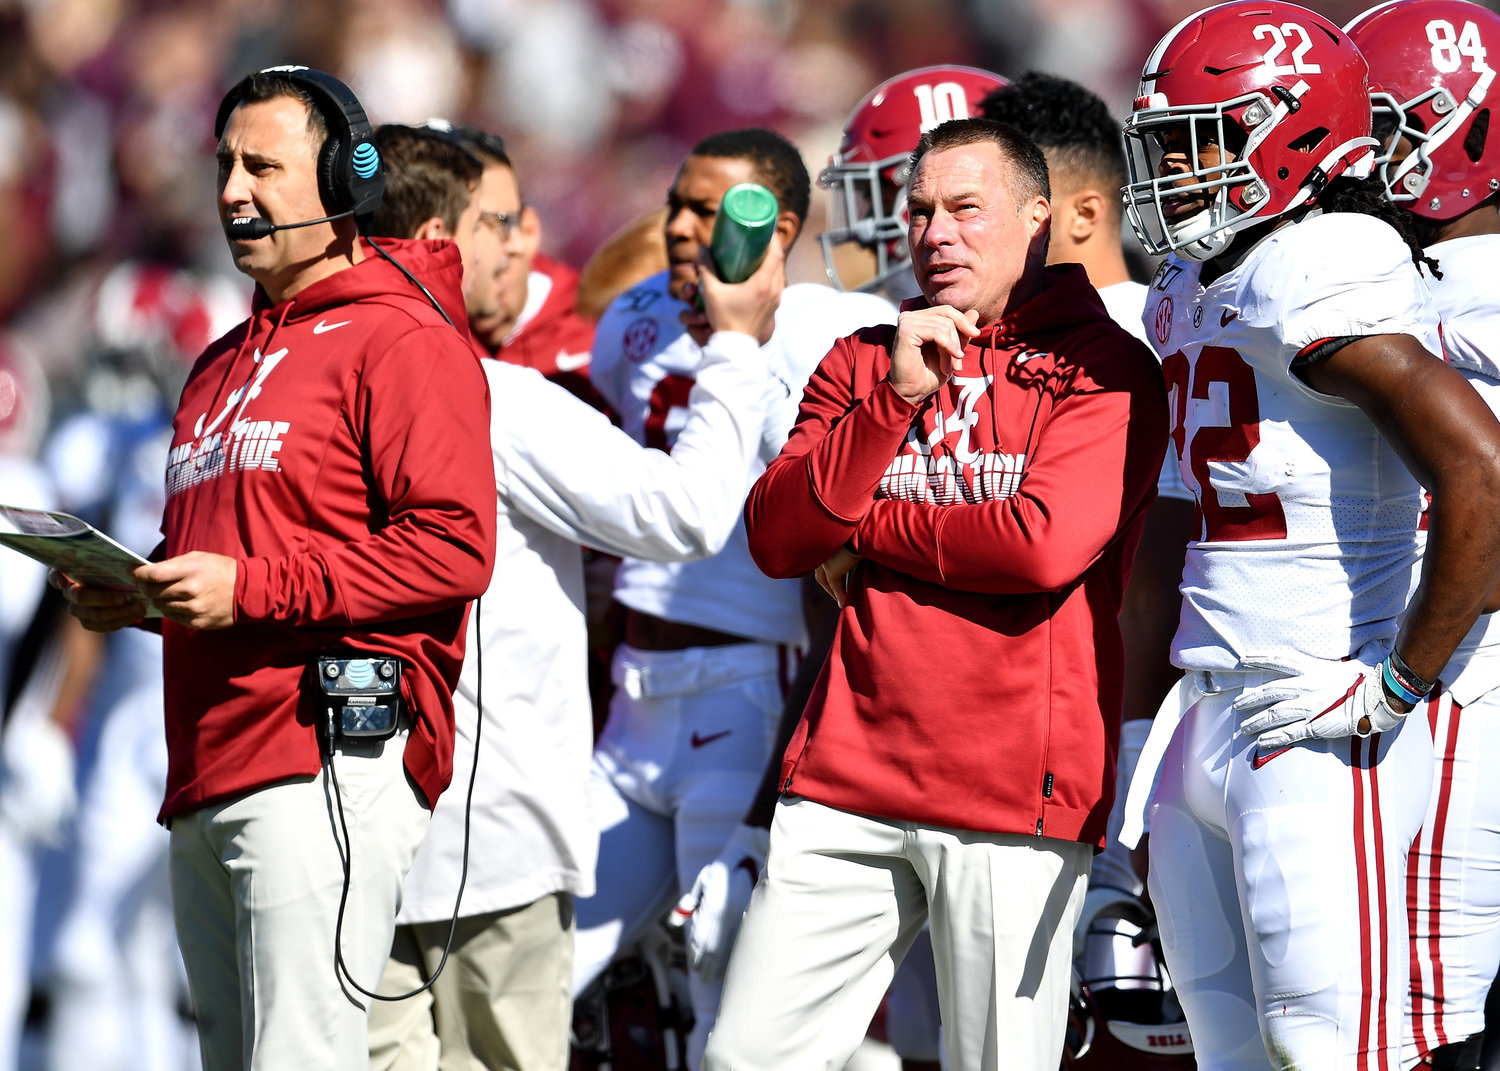 Alabama offensive coordinator Steve Sarkisian and analyst Butch Jones on the sidelines during the first half of an NCAA football game against Mississippi State Saturday, Nov. 16, 2019, at Davis Wade Stadium in Starkville, Miss.